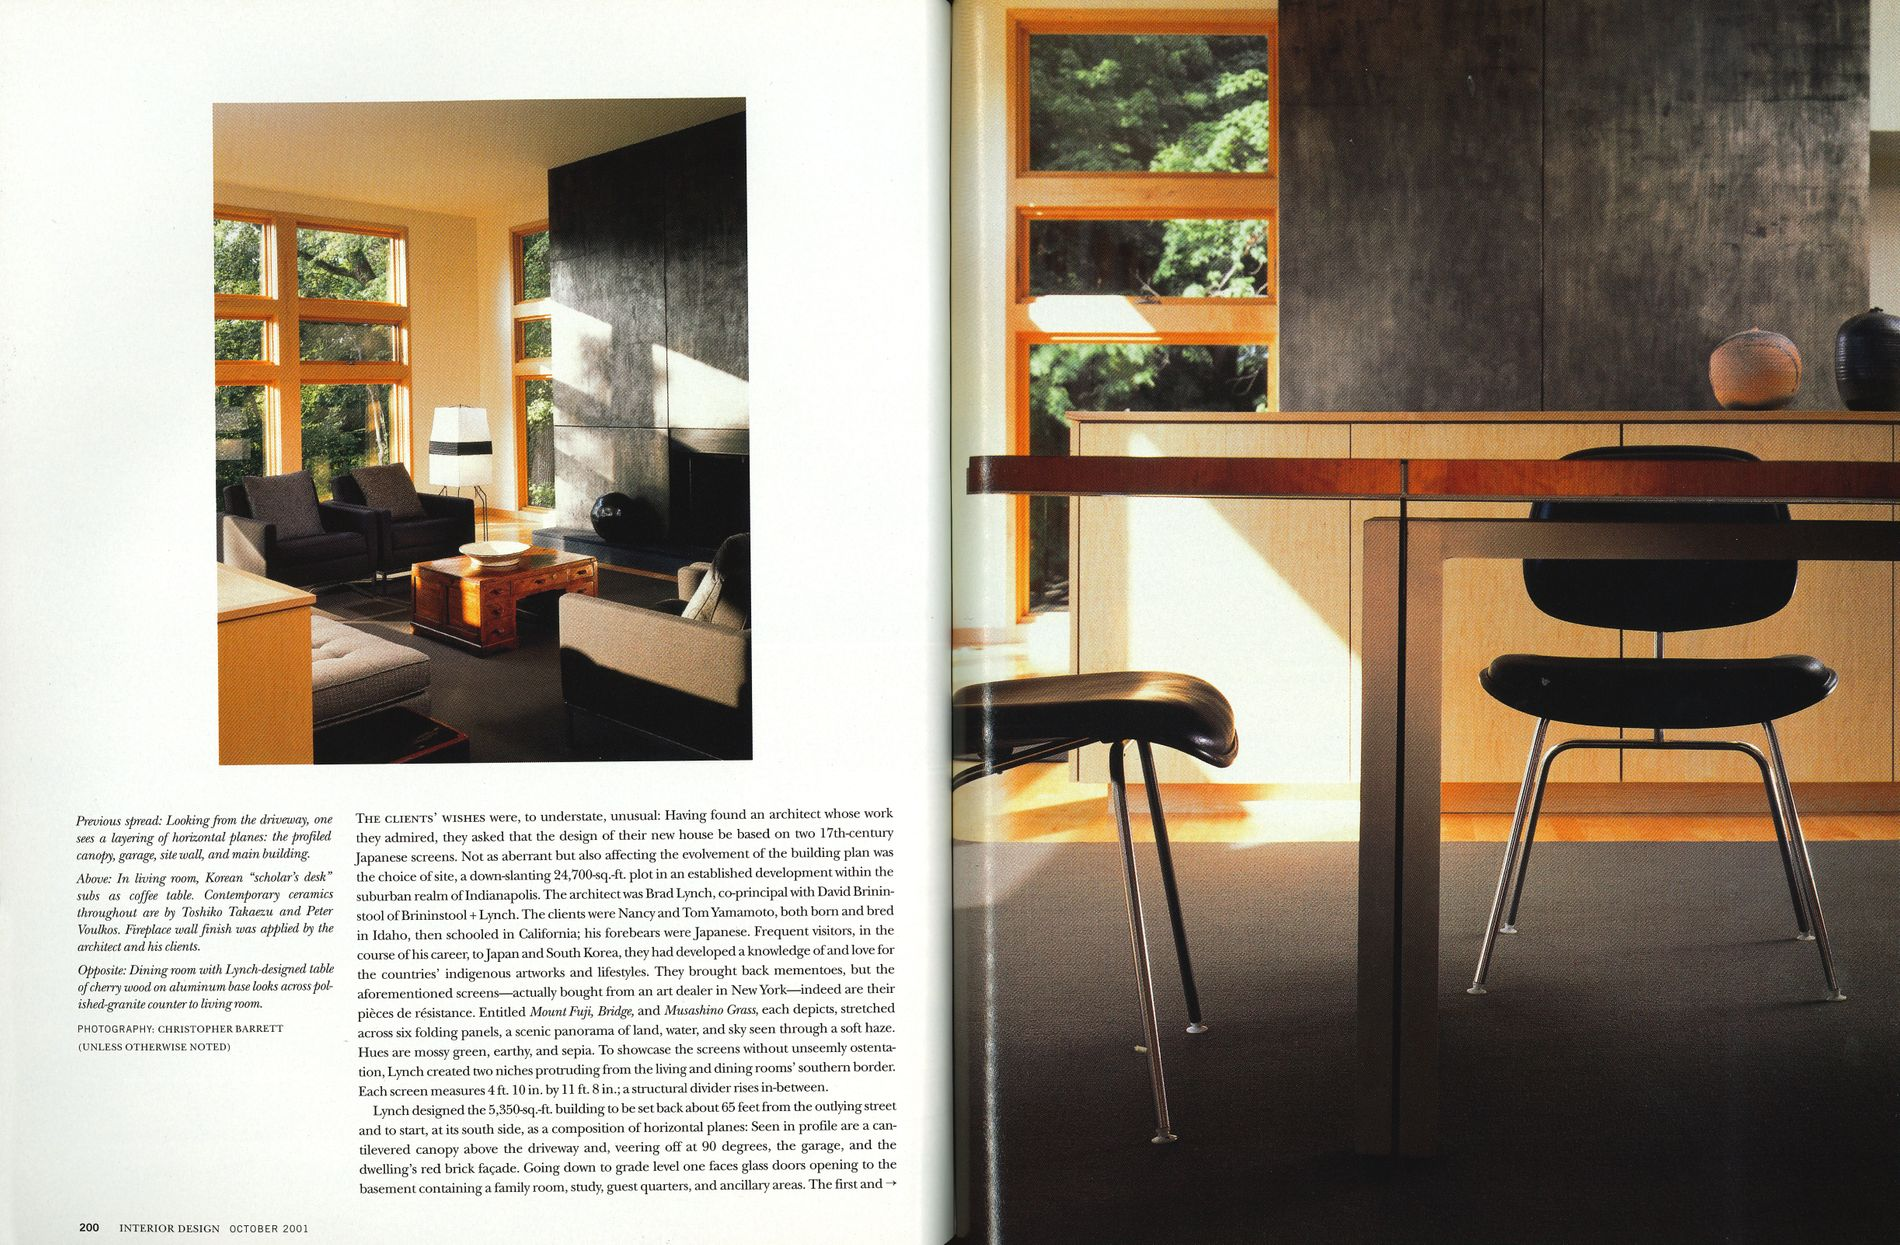 Interior Design, October 2001